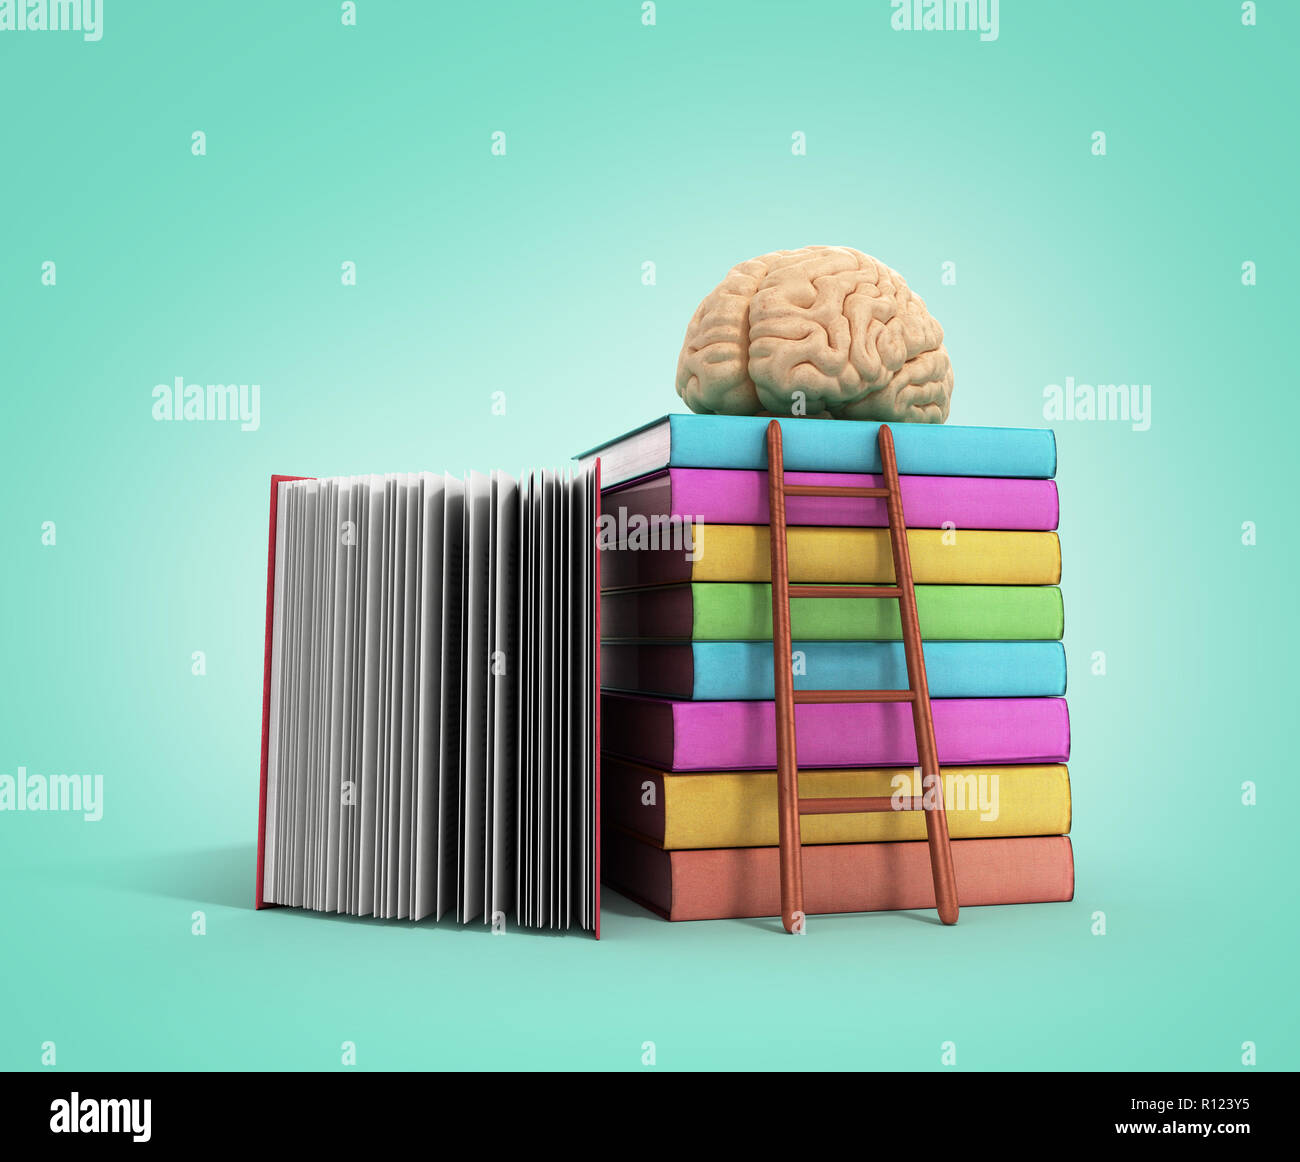 brain training concept lies on a pile of books and a wooden staircase next to them 3d render on a gradient background - Stock Image